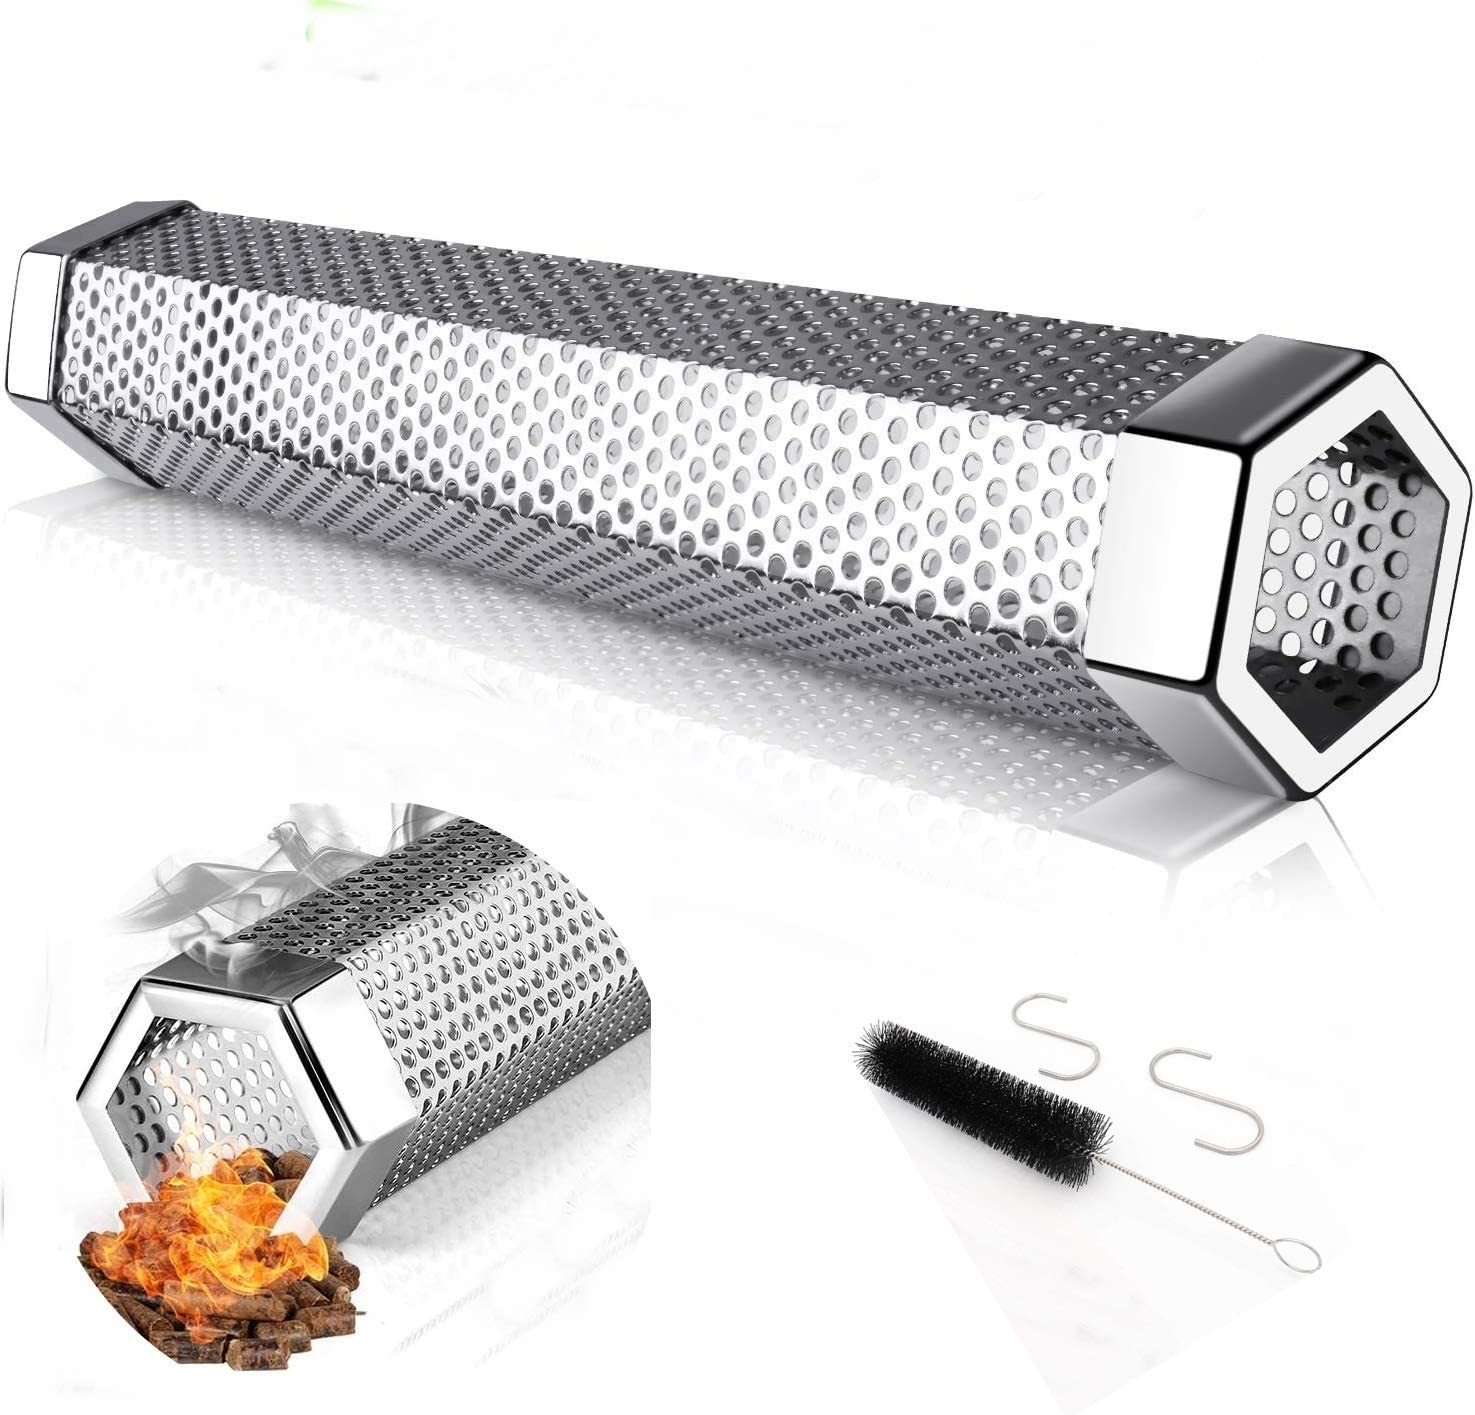 IBETTERN Smoke NEW Tube New color for Pellet BBQ Grill - Smoker 12